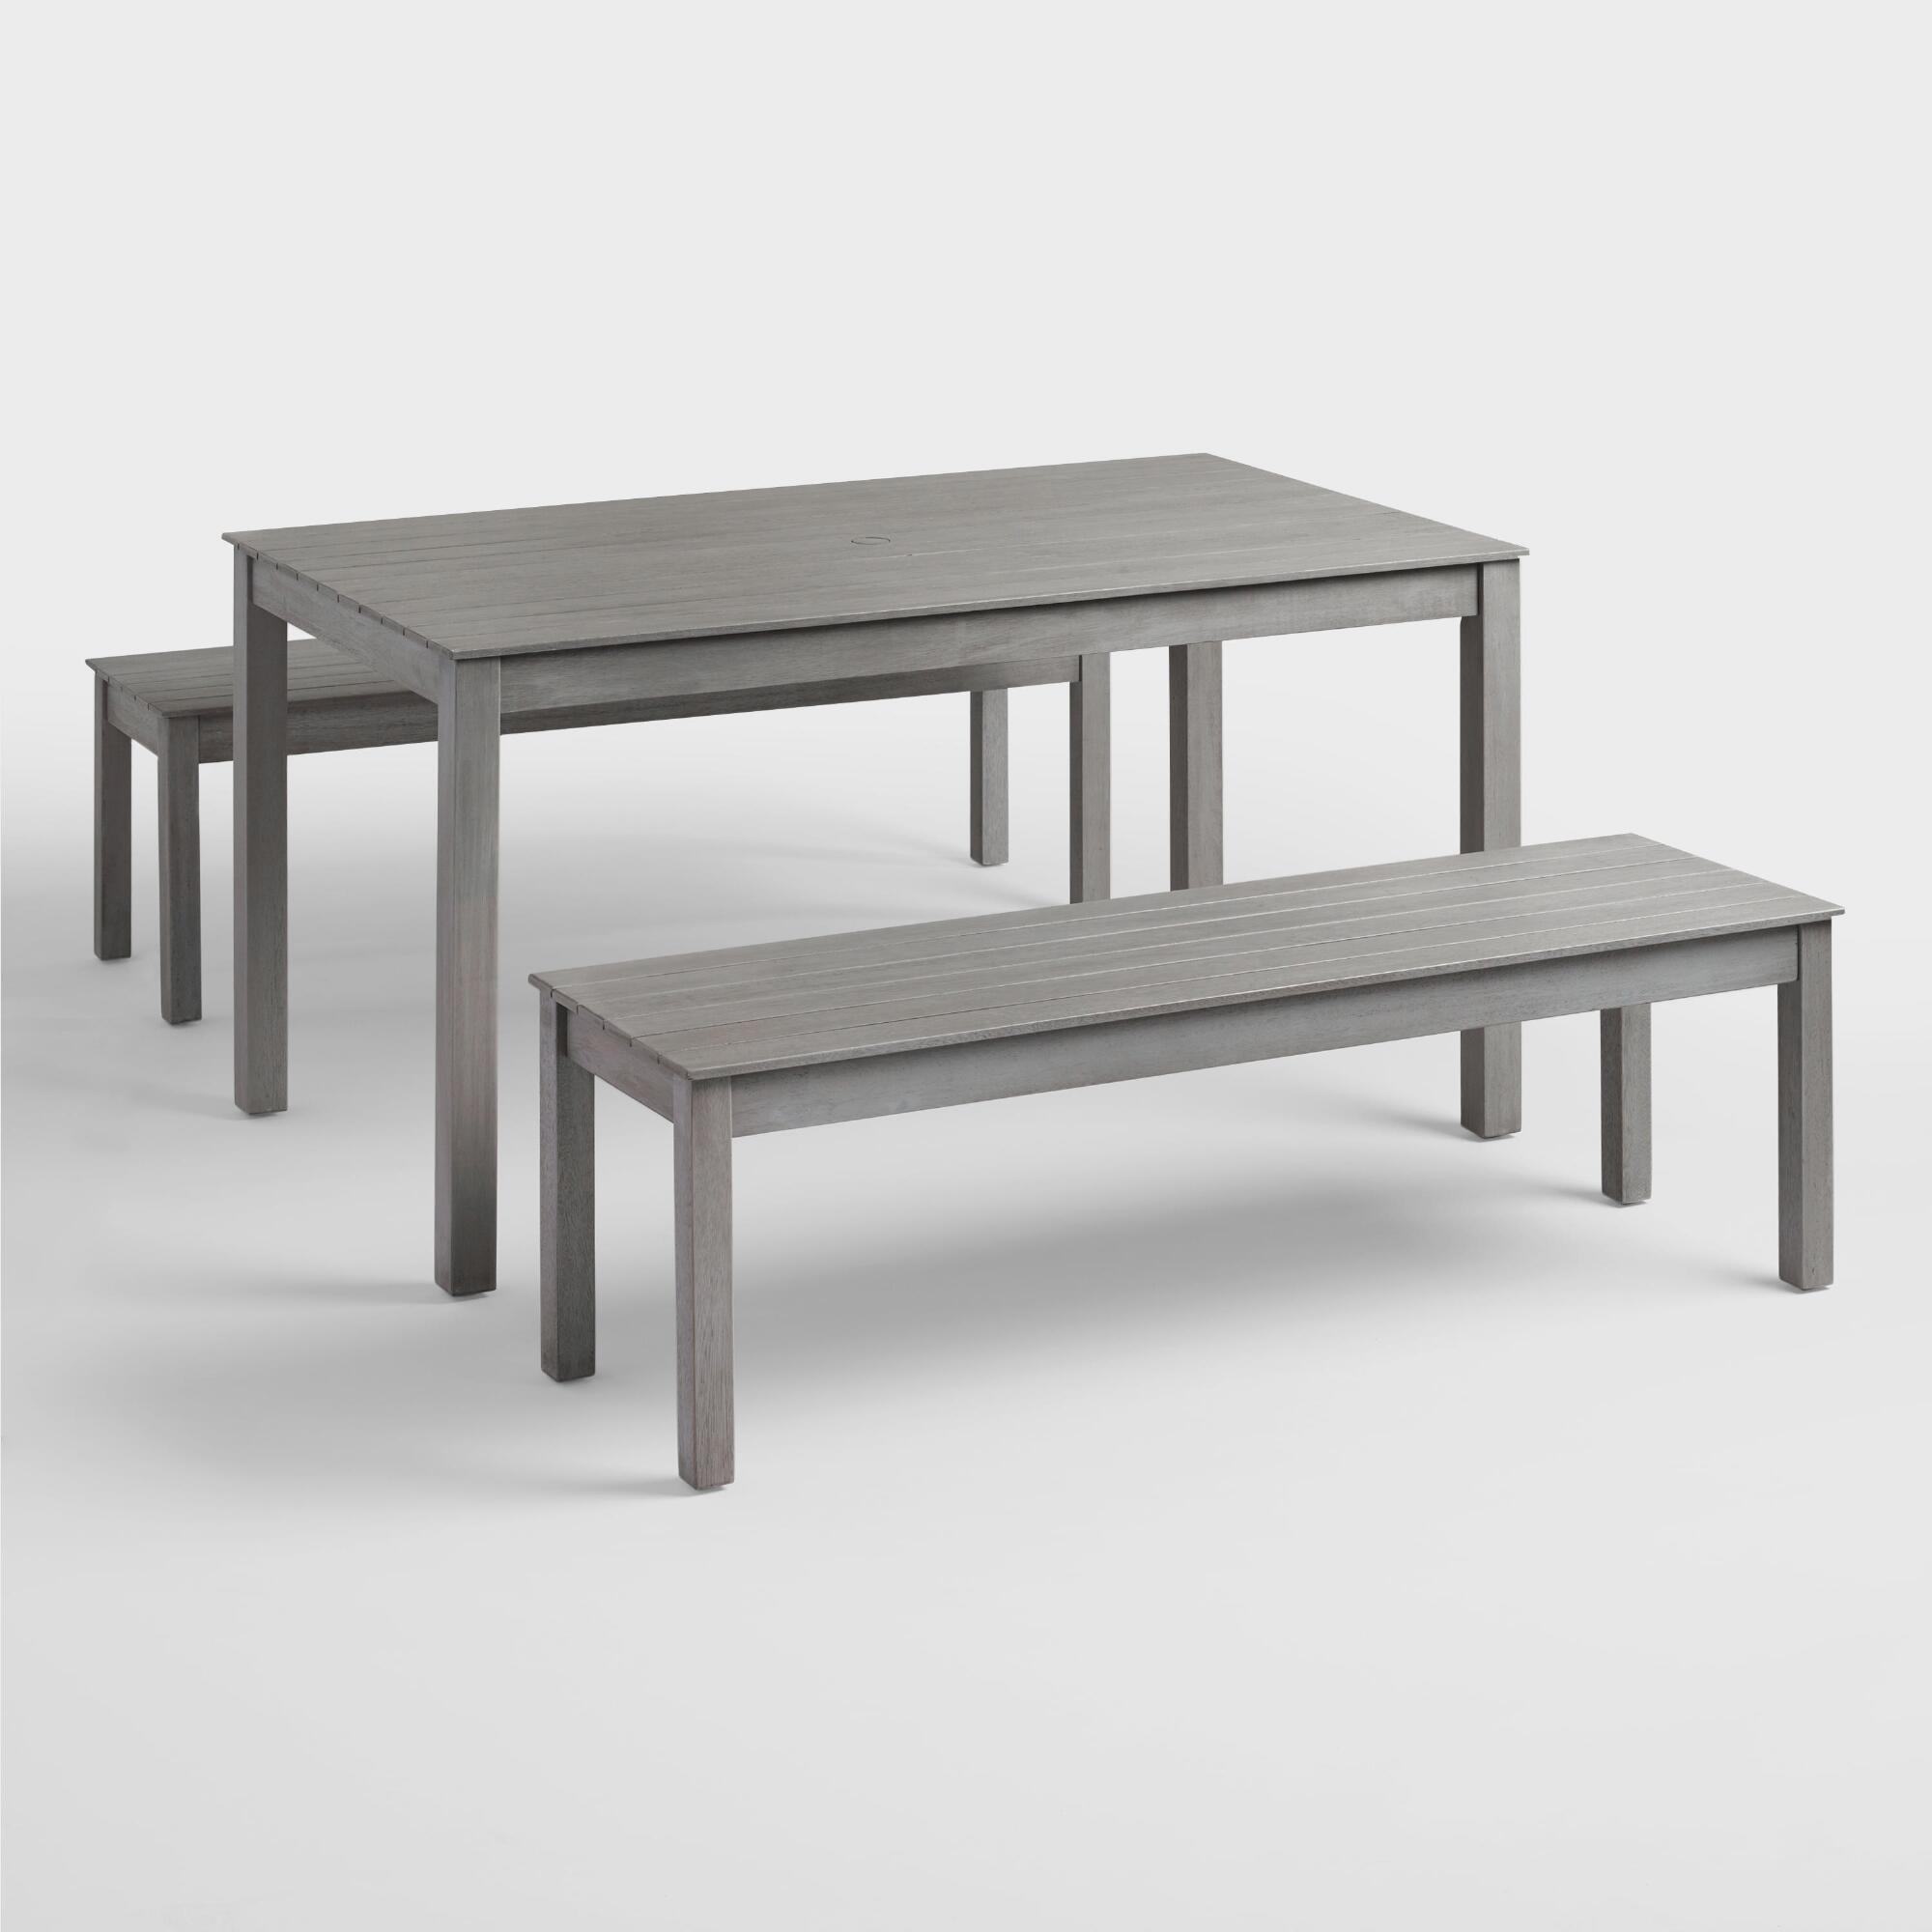 . Gray San Pedro 3 Piece Outdoor Dining Furniture Set   World Market